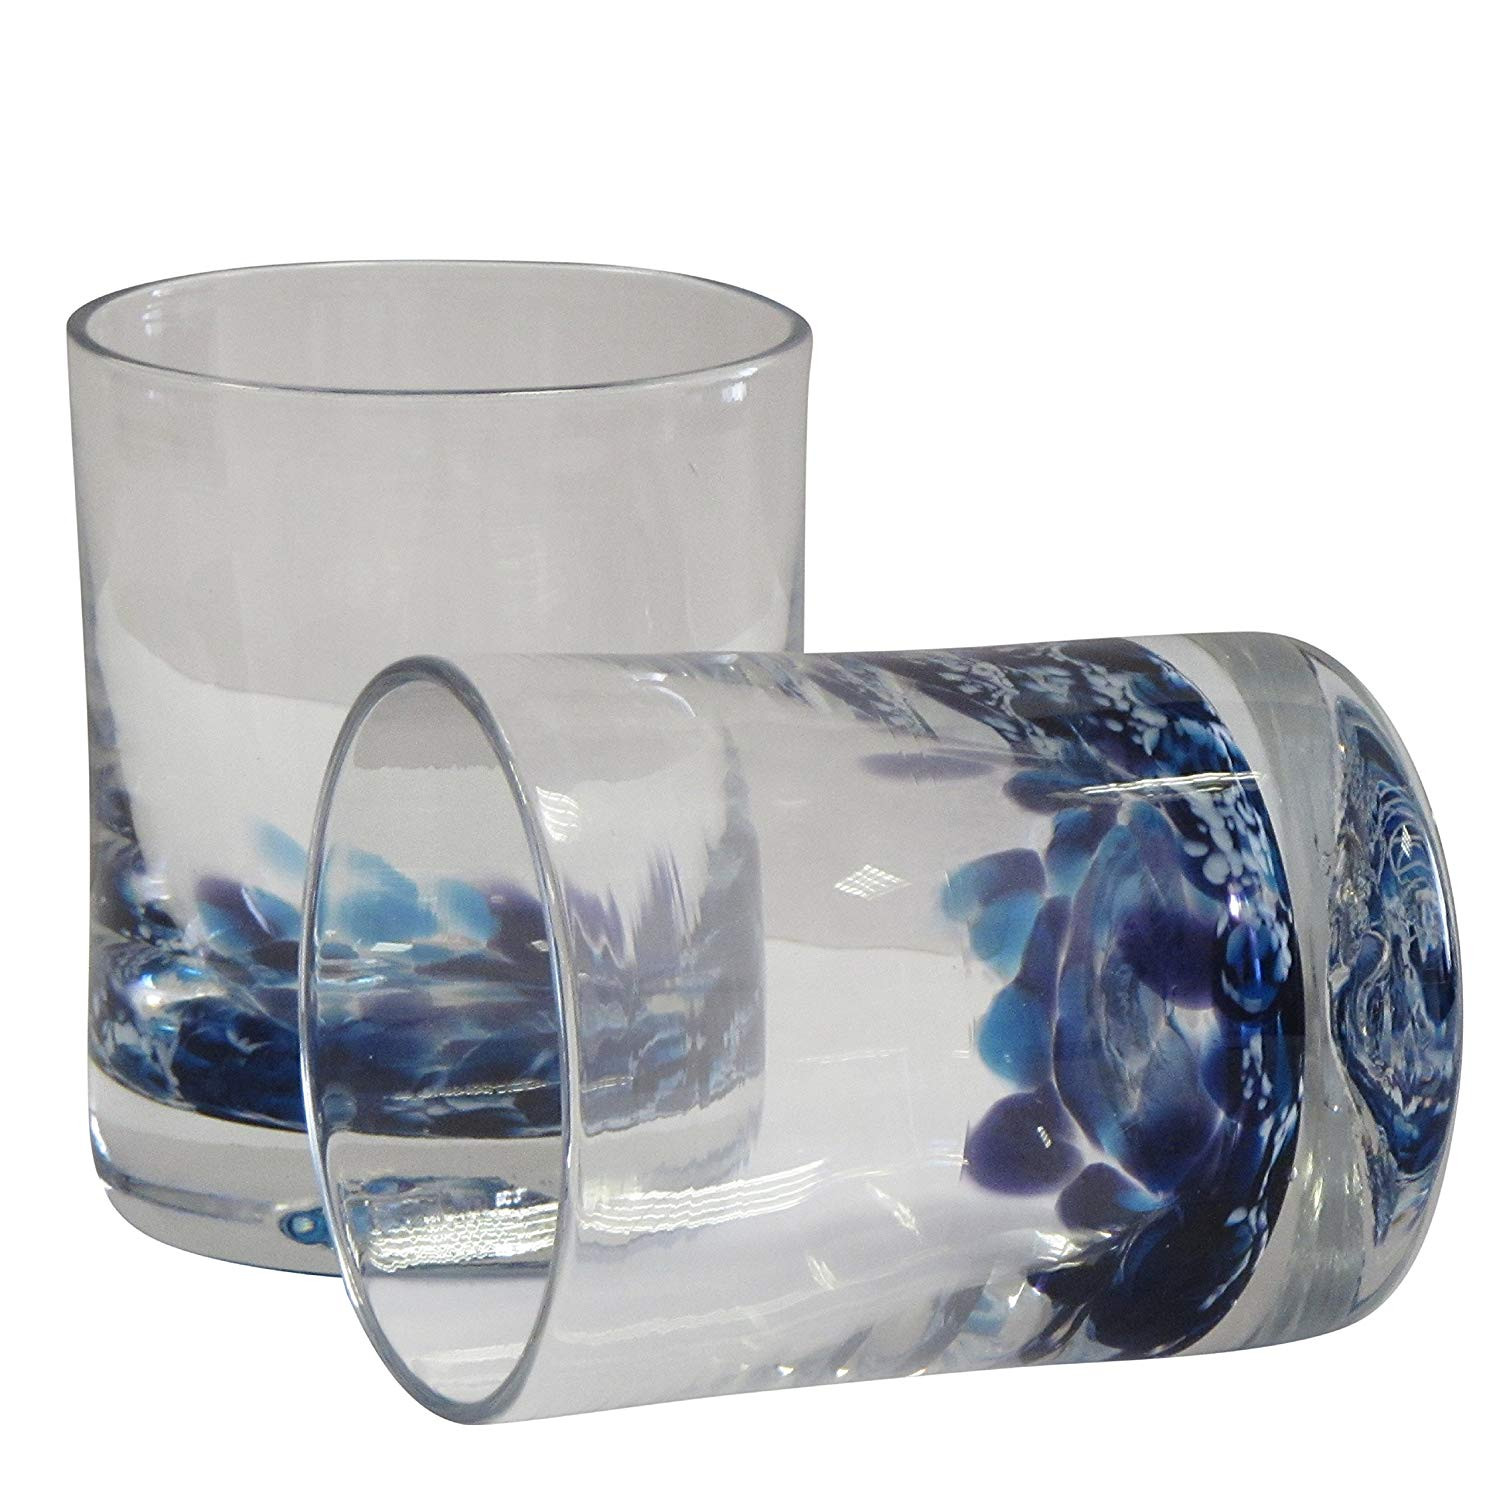 waterford blue crystal vase of amazon com irish handmade whiskey scotch glasses by jerpoint for amazon com irish handmade whiskey scotch glasses by jerpoint glass studios ireland set of two hand blown heavy base glass tumblers blue heather